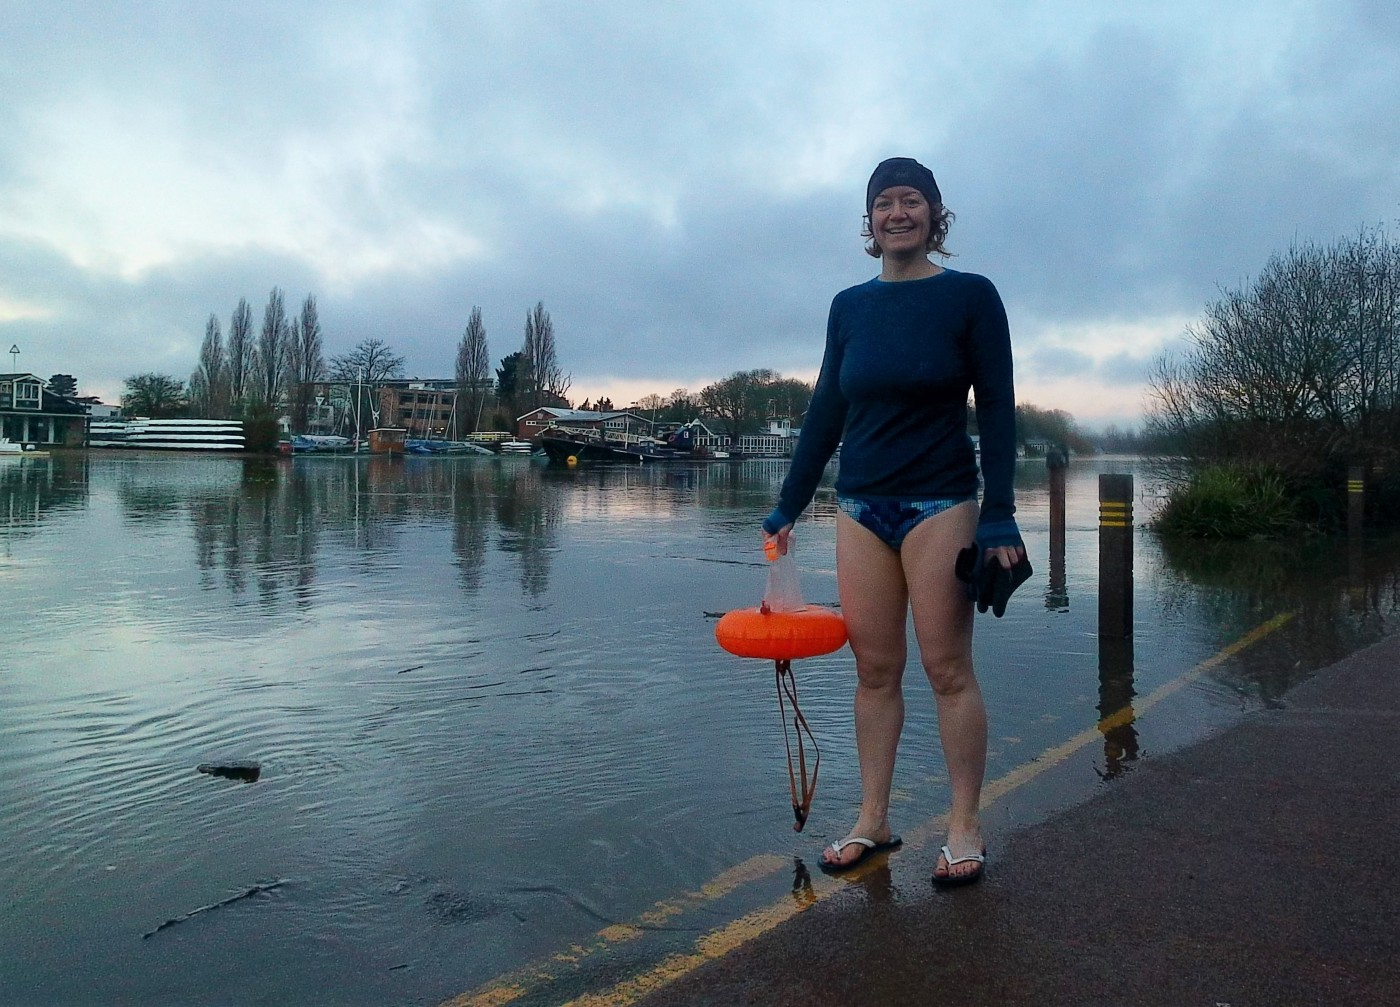 A swimmer next to a river